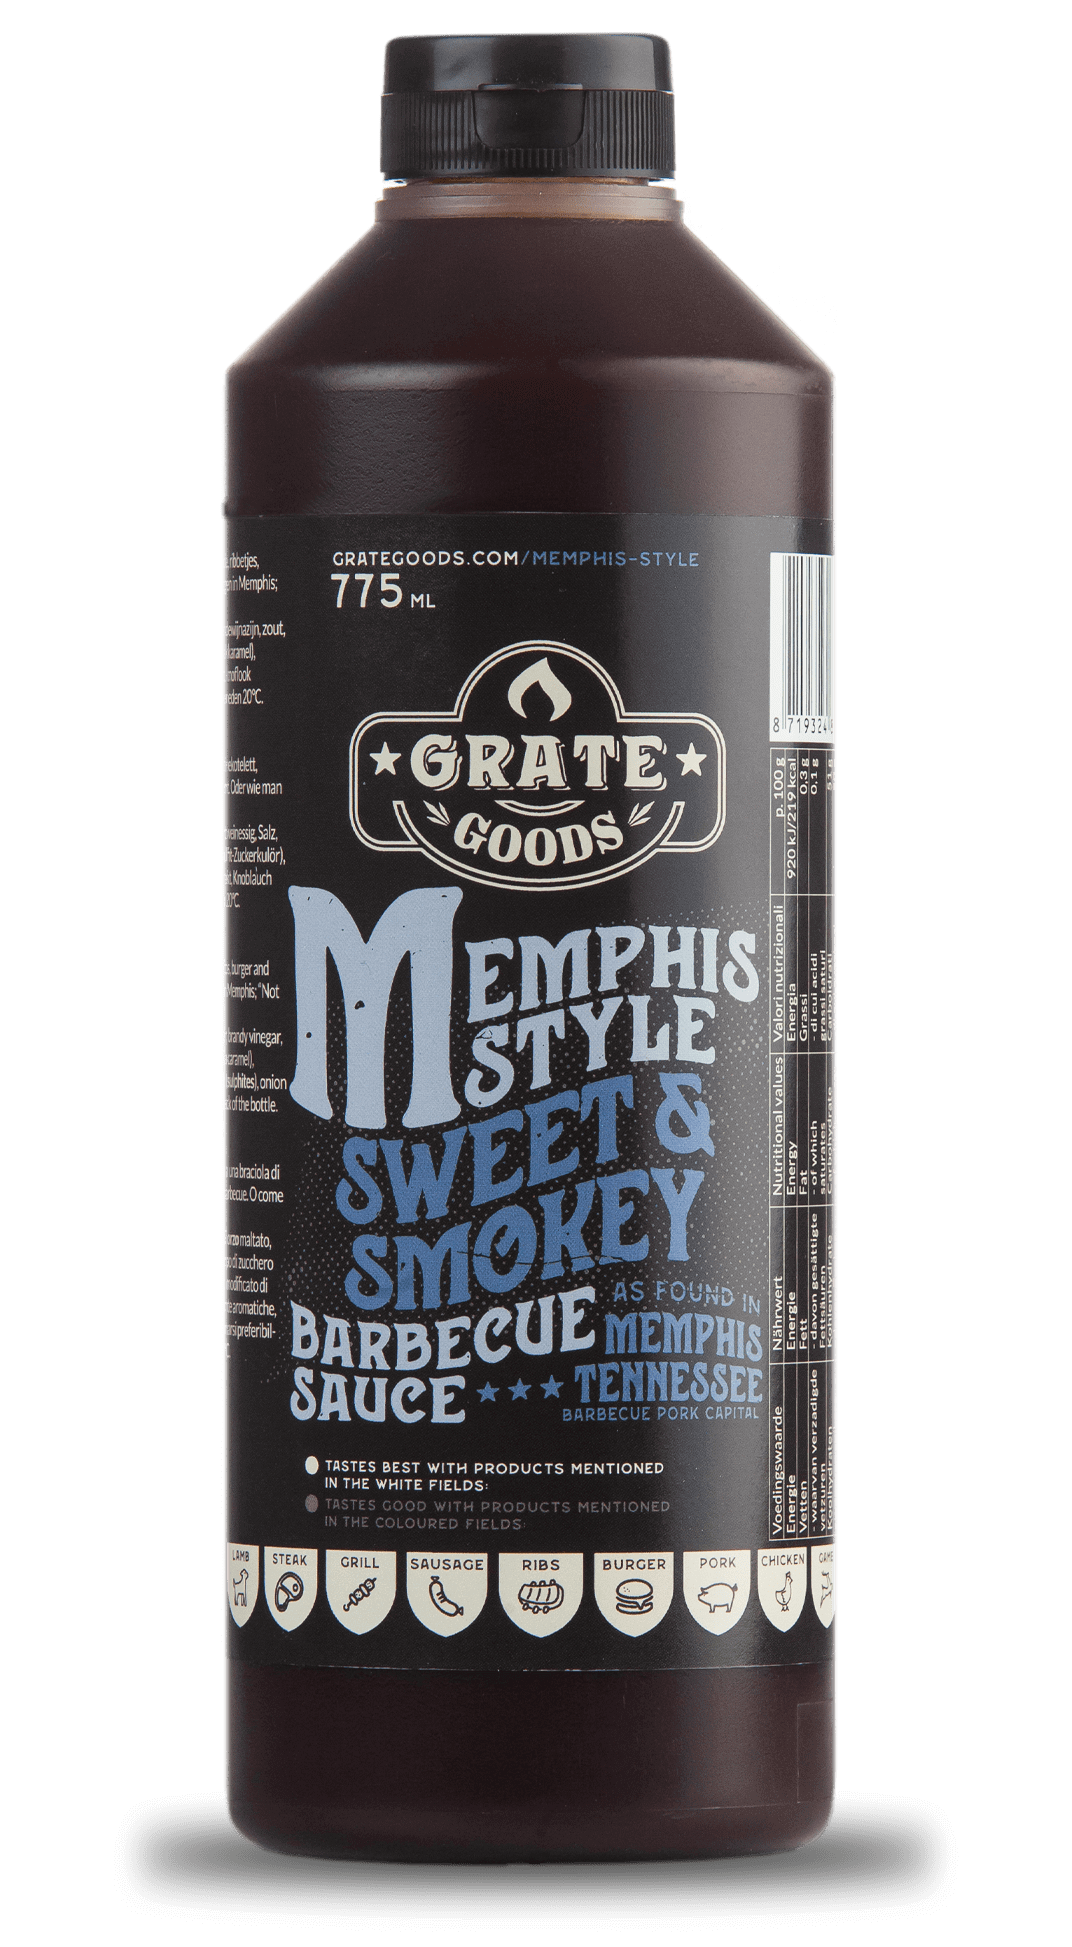 Memphis Style Sweet & Smokey barbecue sauce - bbq saus - Grate Goods